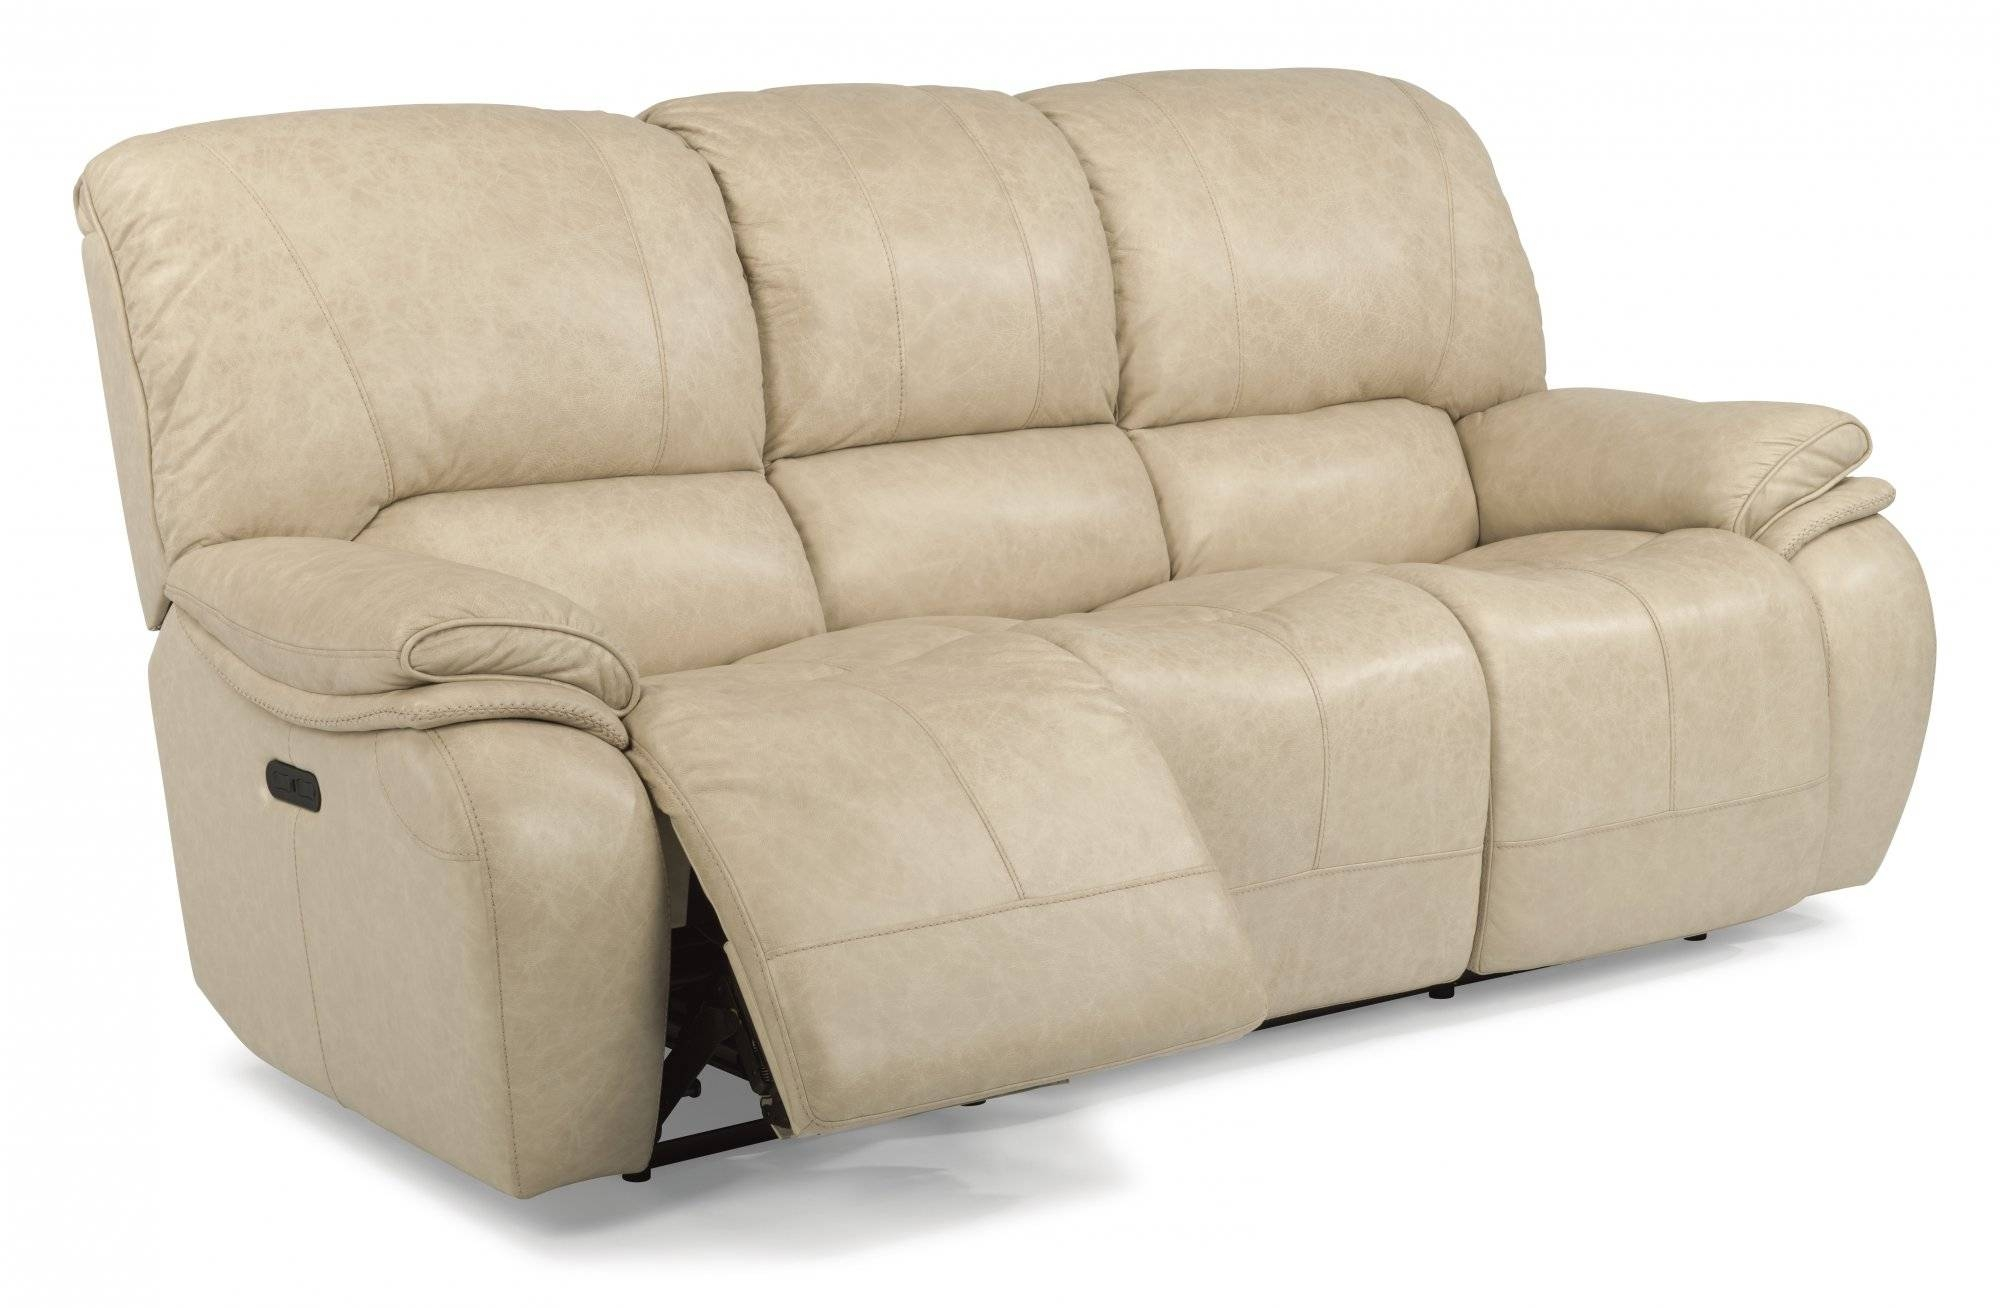 Awesome Recliner Sofa Chair 96 For Sofa Room Ideas With Recliner intended for Sofa Chair Recliner (Image 1 of 30)